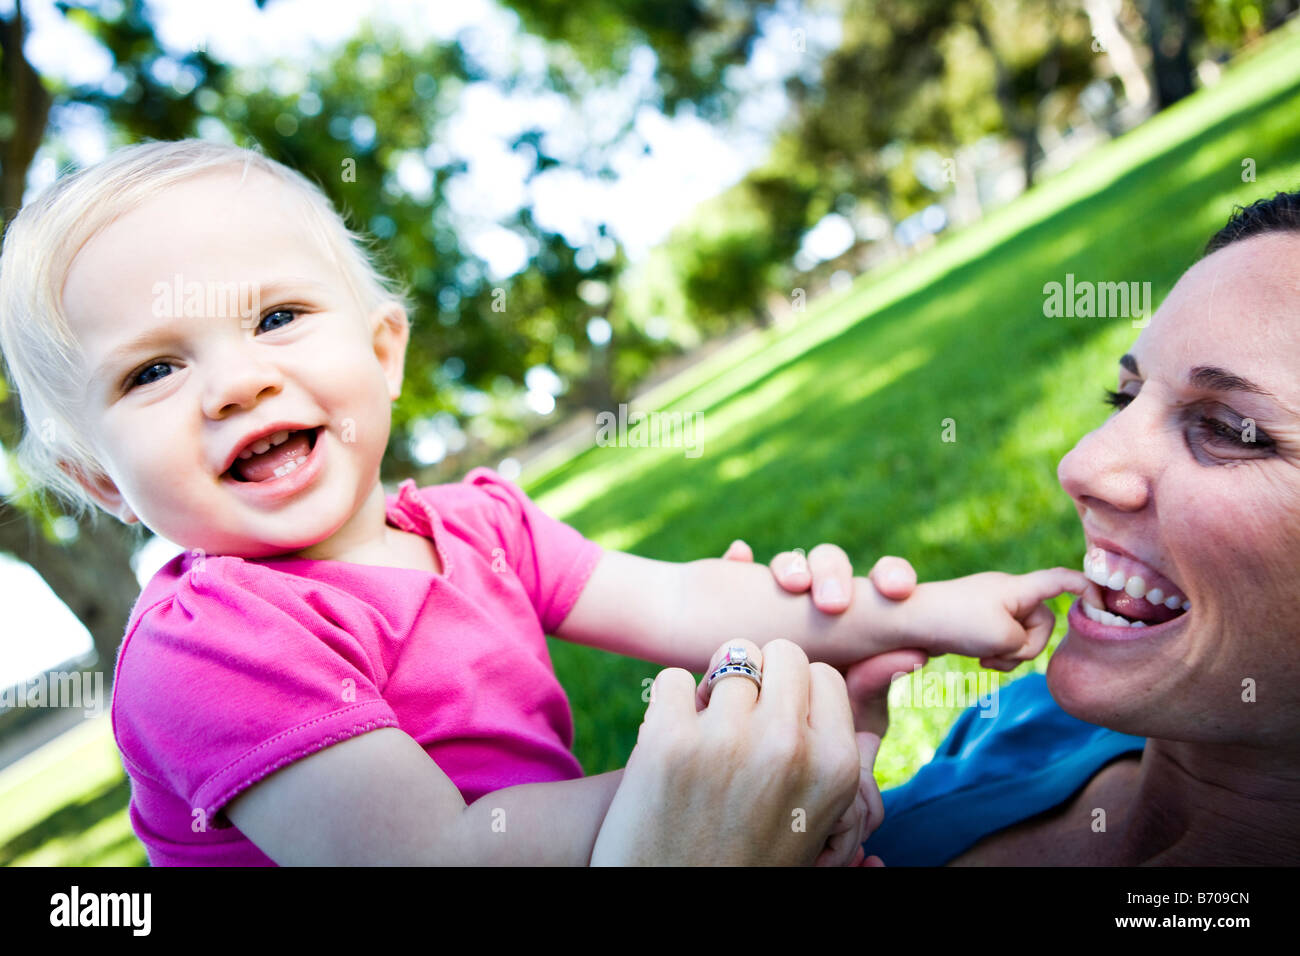 One year old girl and mom playing in the park. - Stock Image